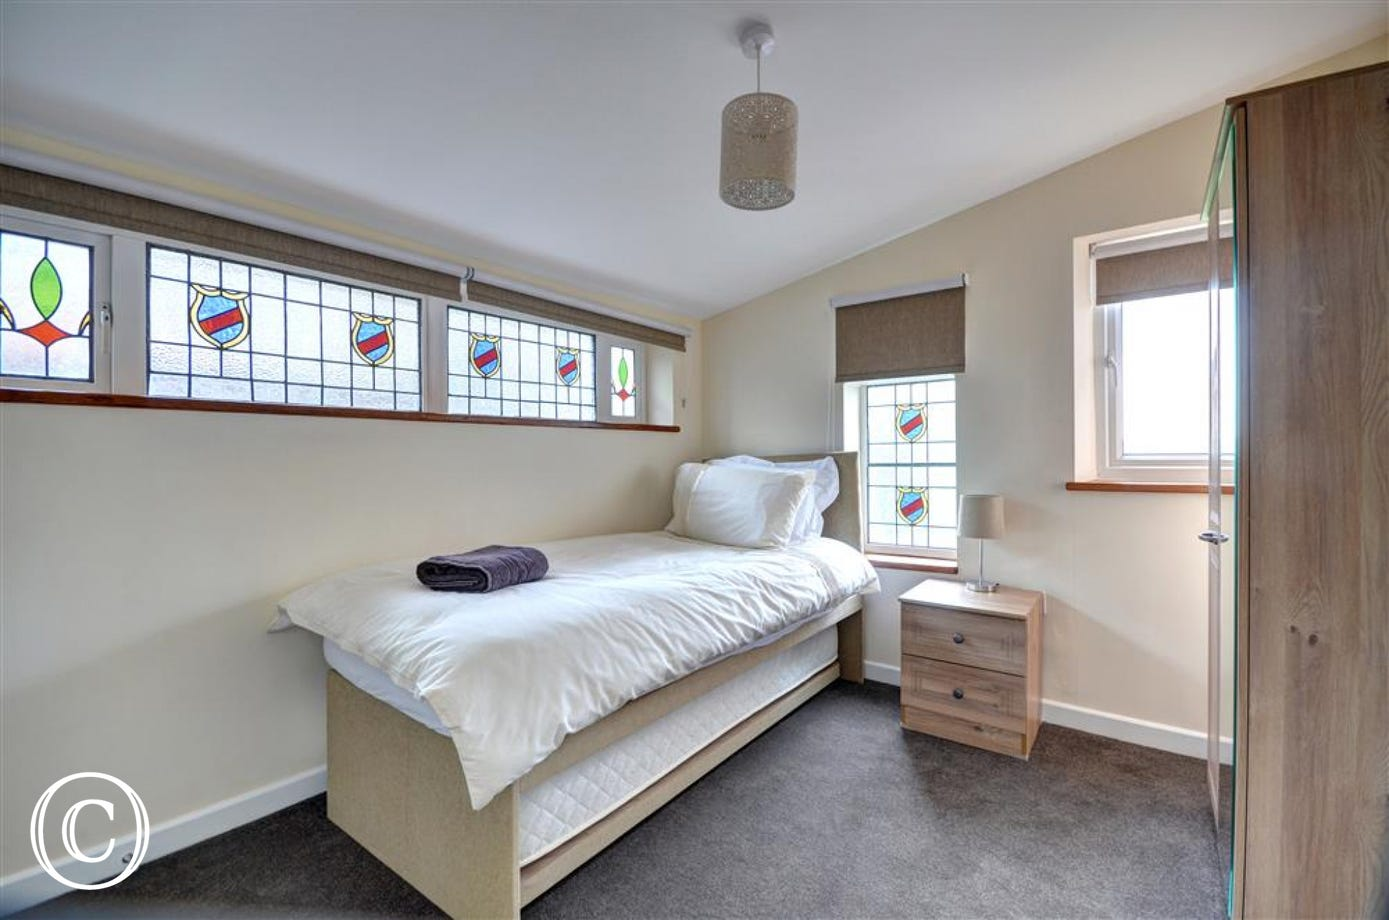 Bedroom 3 is suitable for people with mobility problems